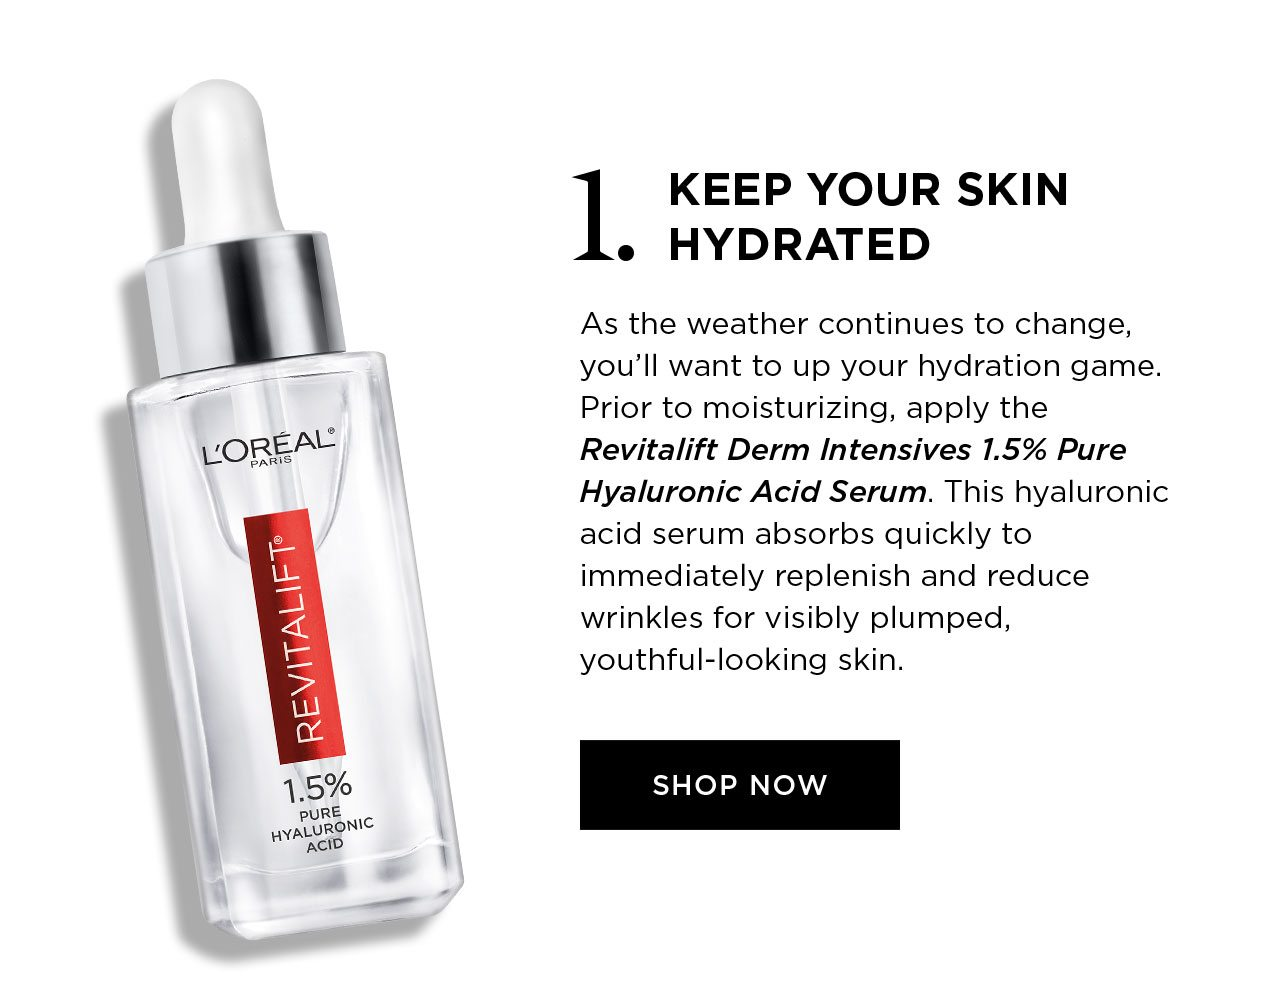 1. KEEP YOUR SKIN HYDRATED - As the weather continues to change, you'll want to up your hydration game. Prior to moisturizing, apply the Revitalift Derm Intensives 1.5 Percent Pure Hyaluronic Acid Serum. This hyaluronic acid serum absorbs quickly to immediately replenish and reduce wrinkles for visibly plumped, youthful-looking skin. - SHOP NOW